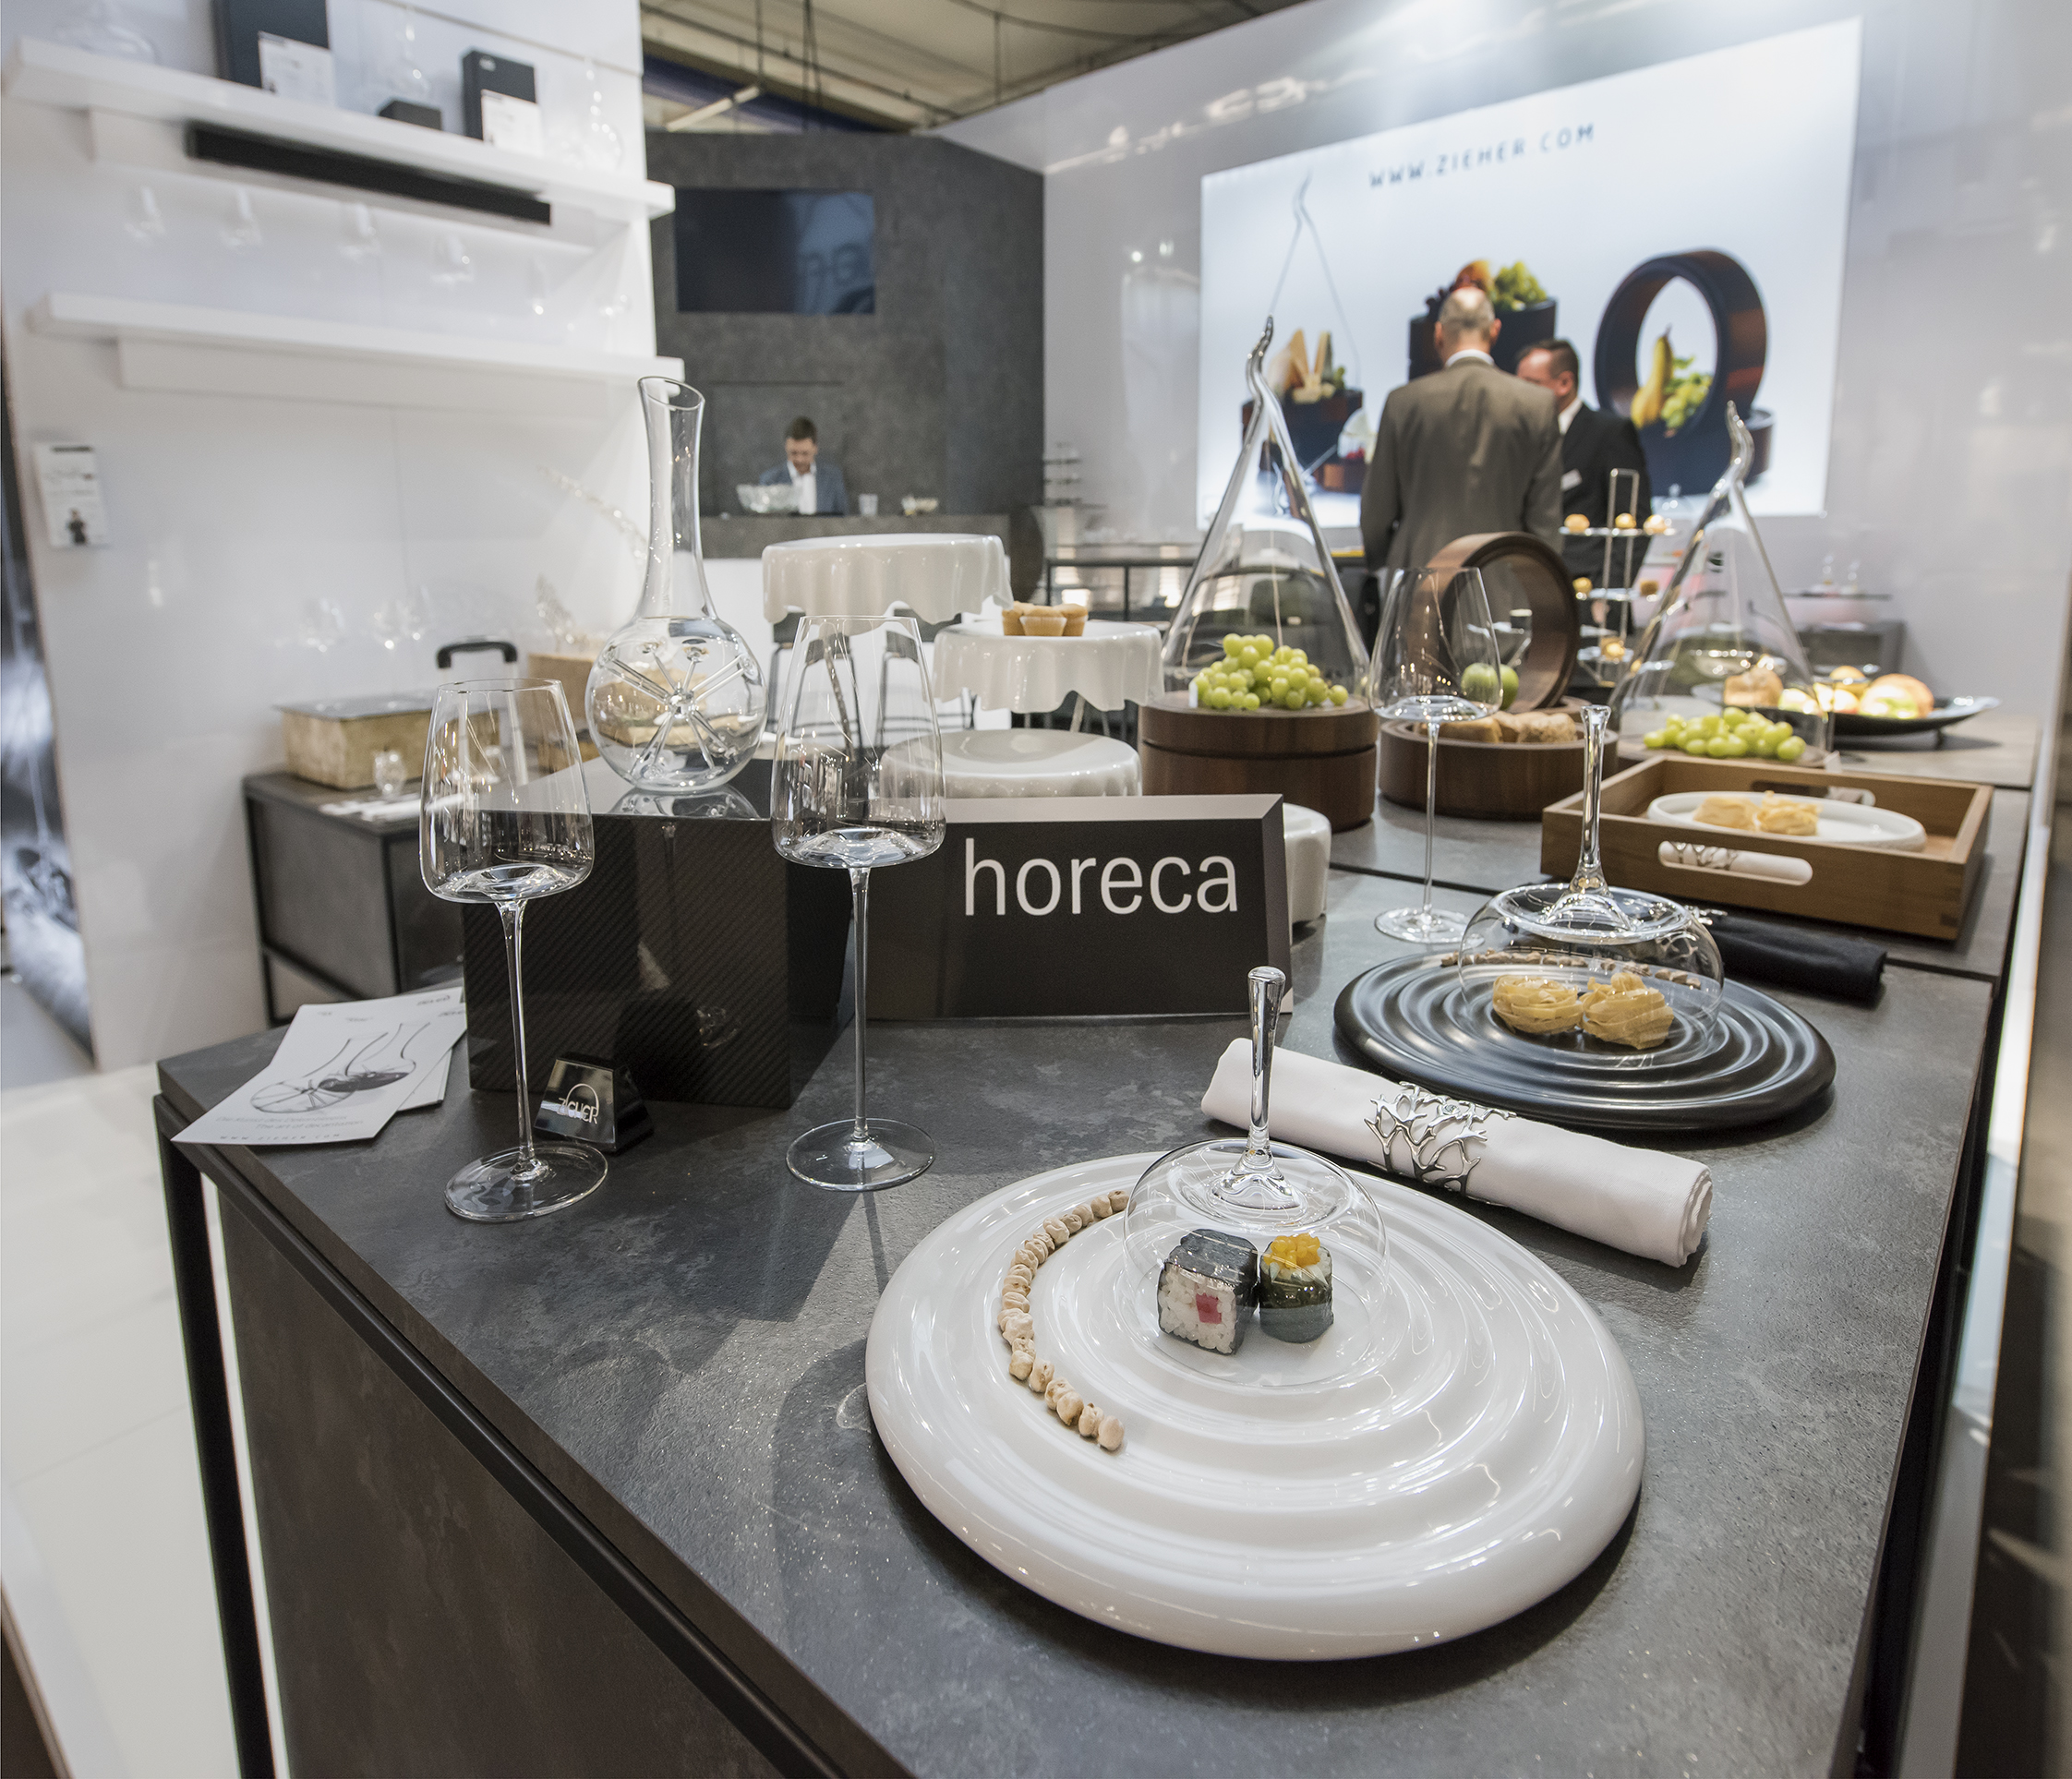 HoReCa products by Zieher at Ambiente